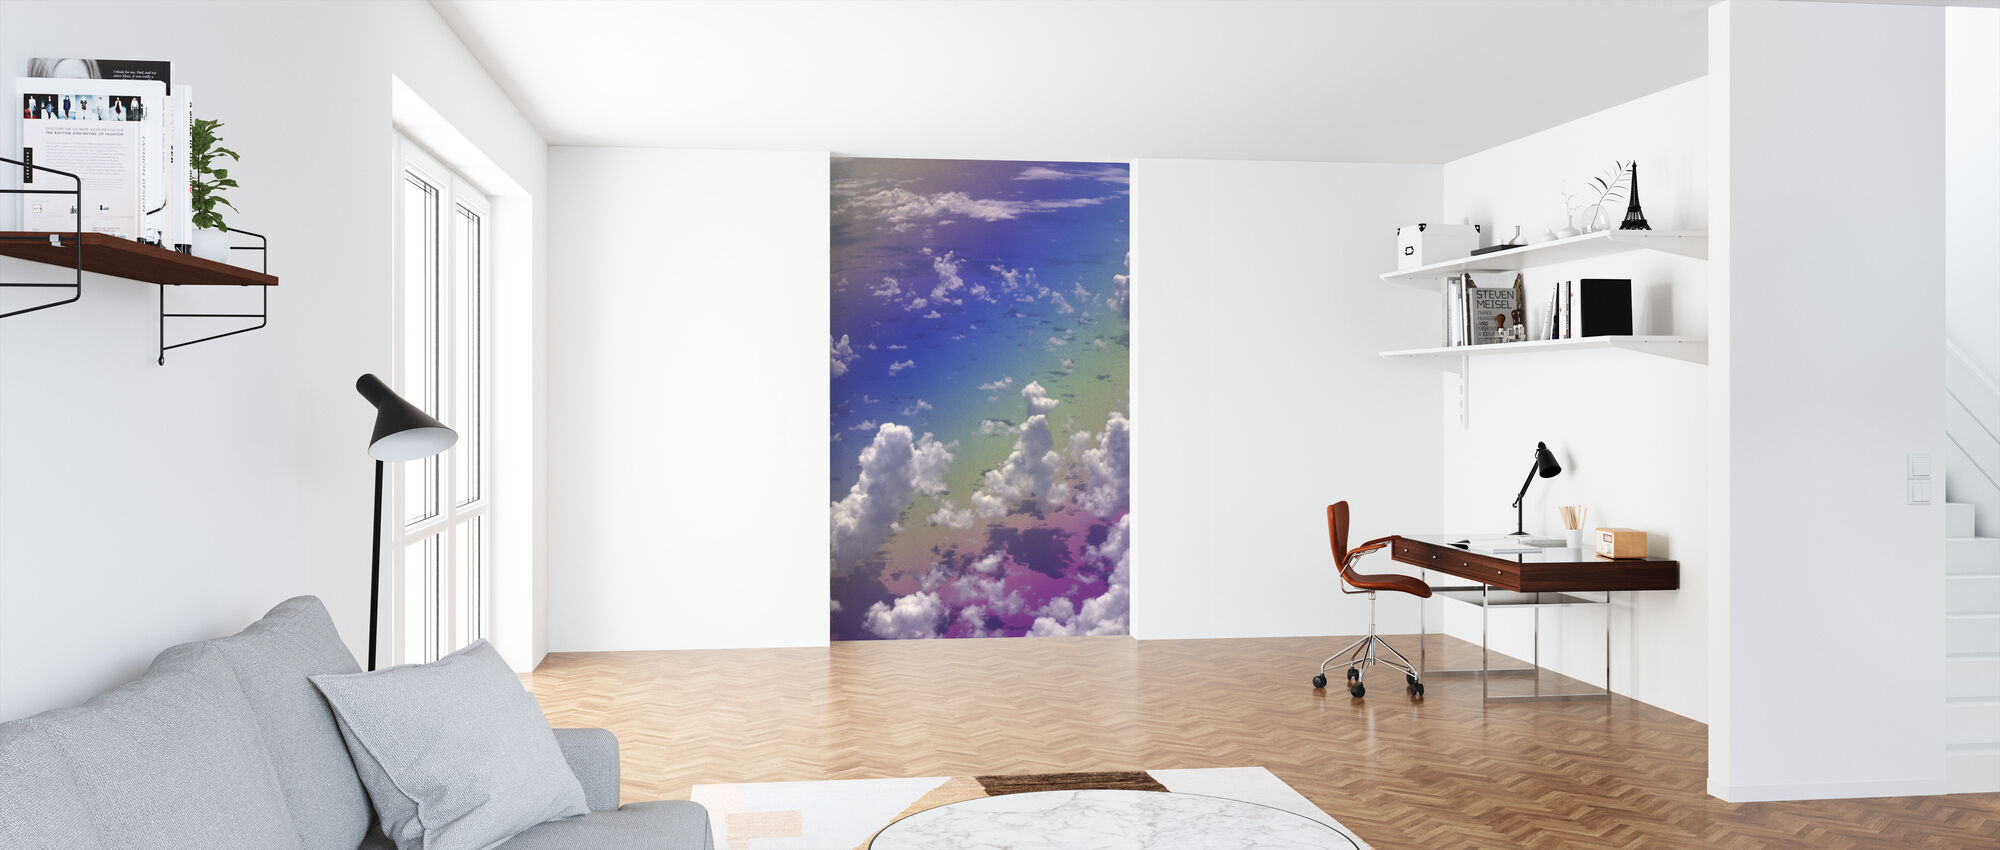 Clouds from Above - Wallpaper - Office